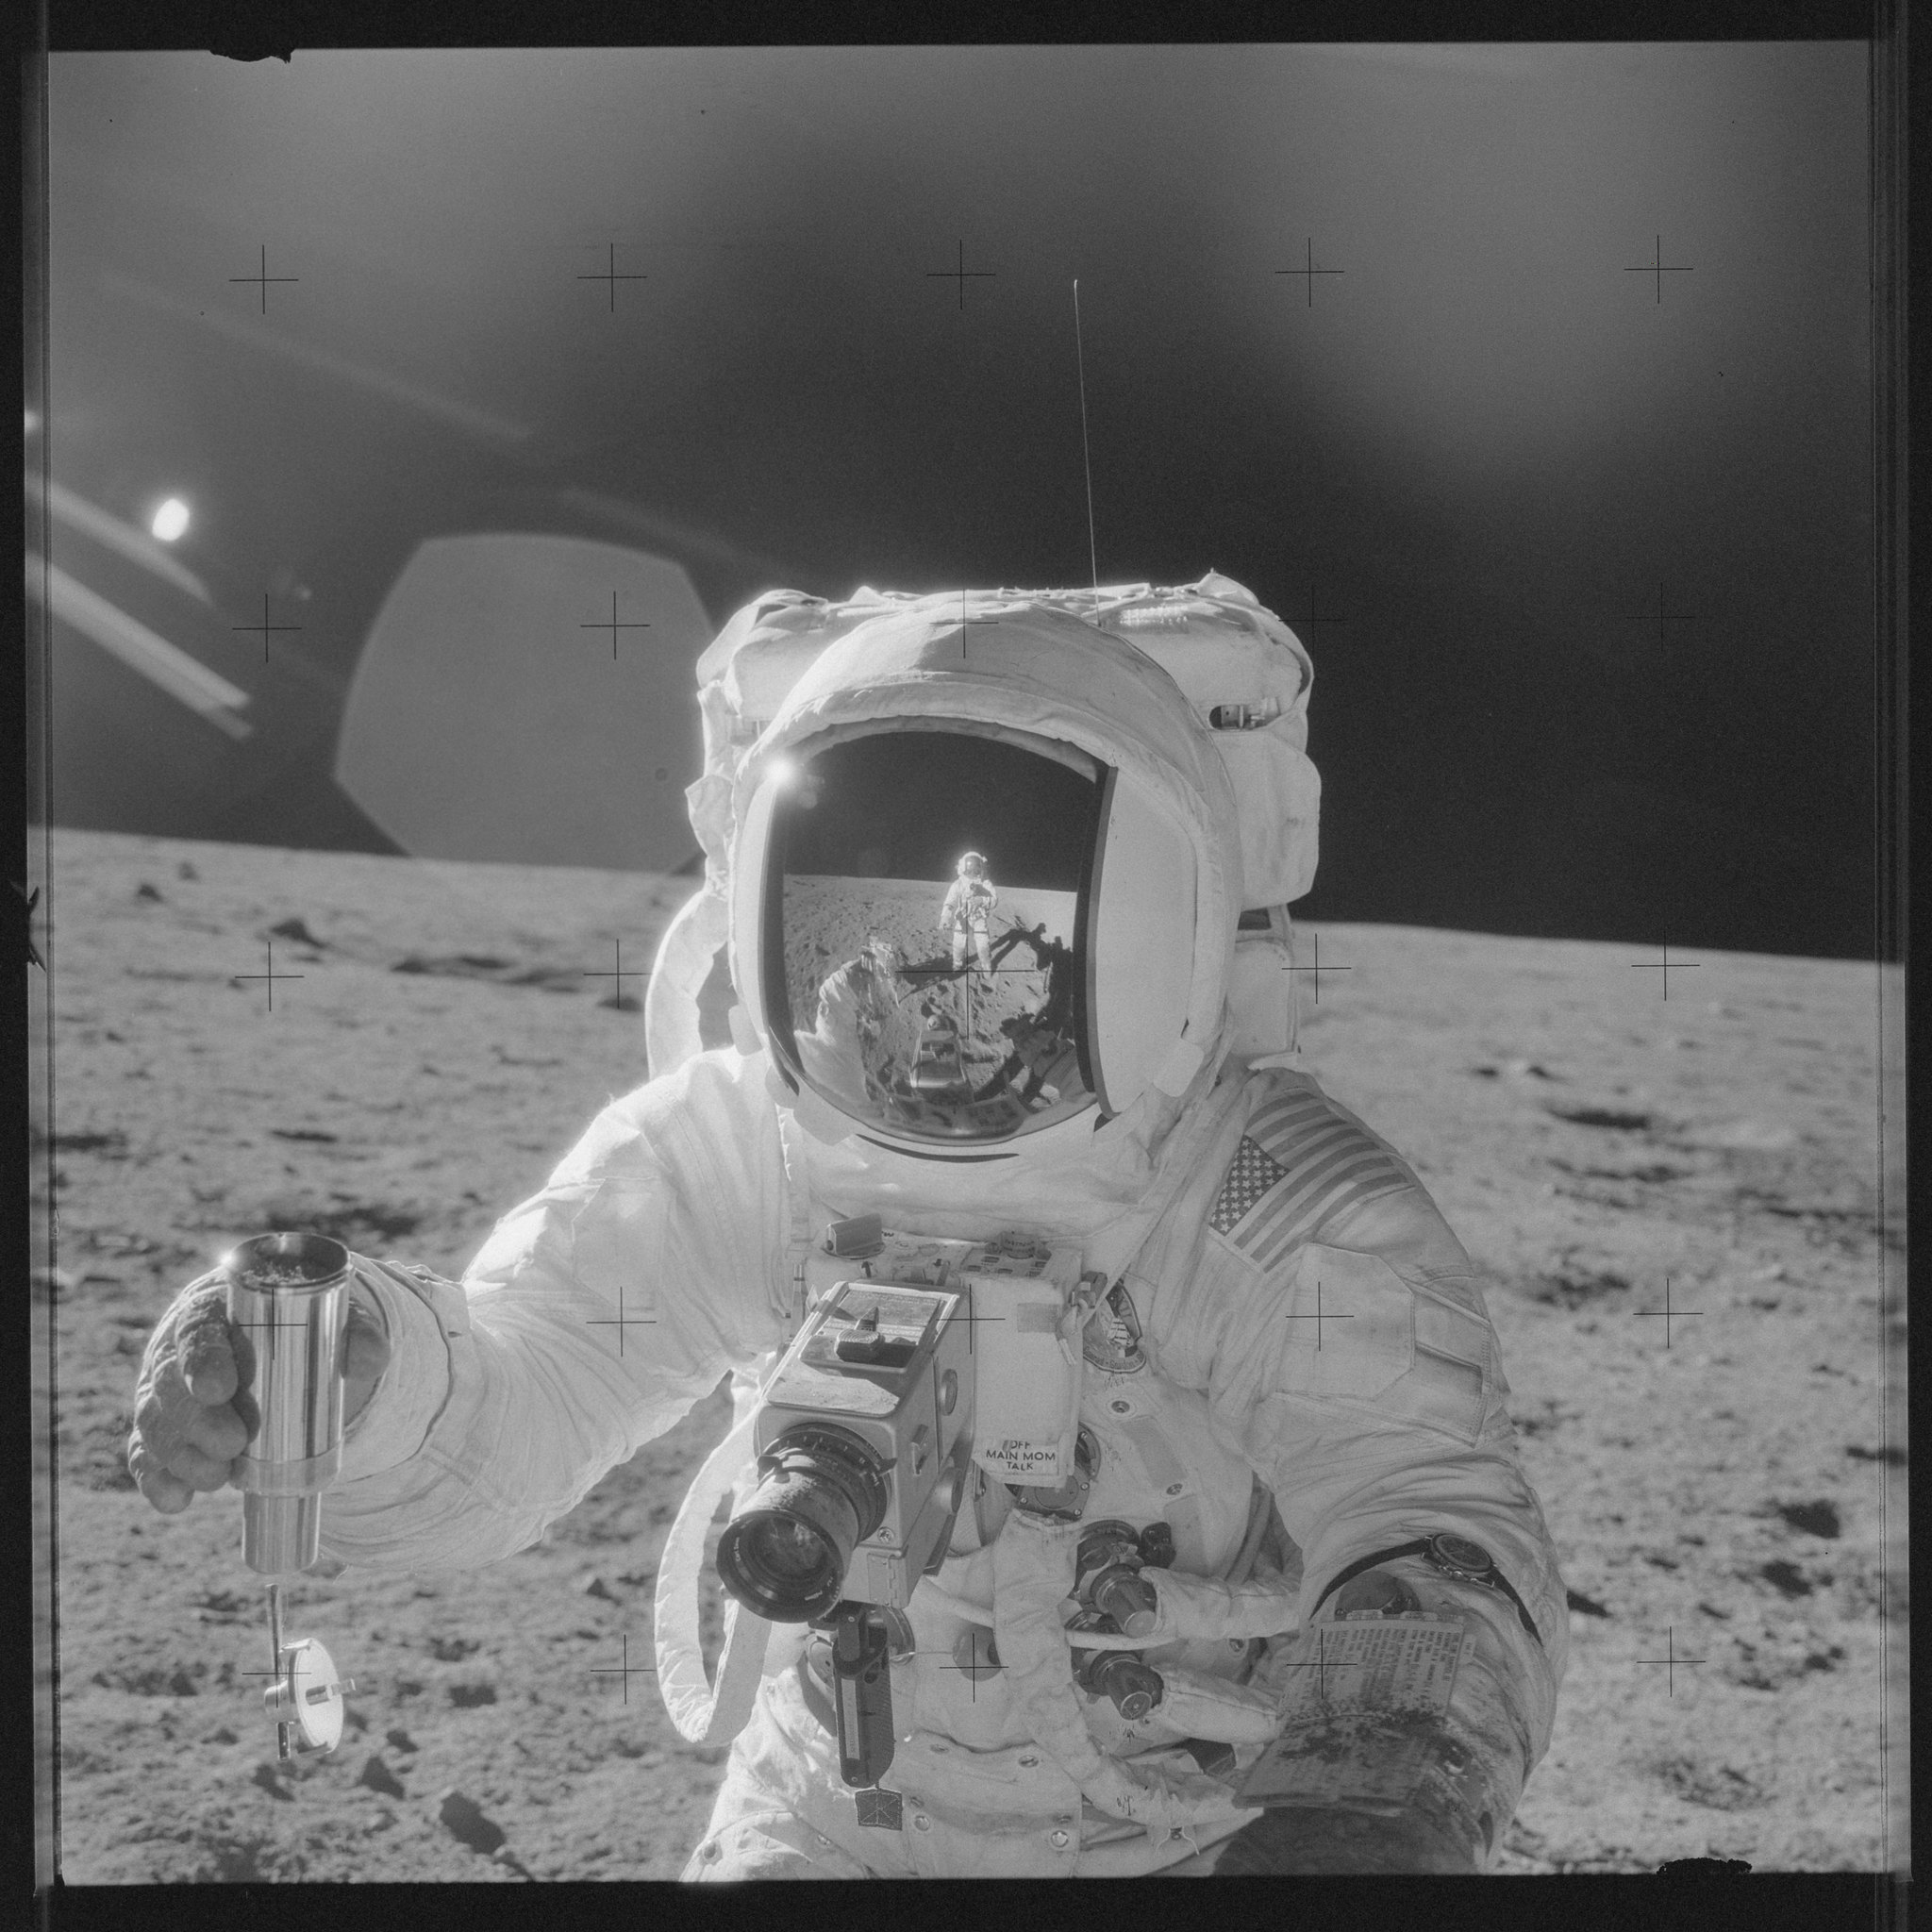 Das Project Apollo Archive | Hochauflösenden Fotos der Apollo Missionen der NASA